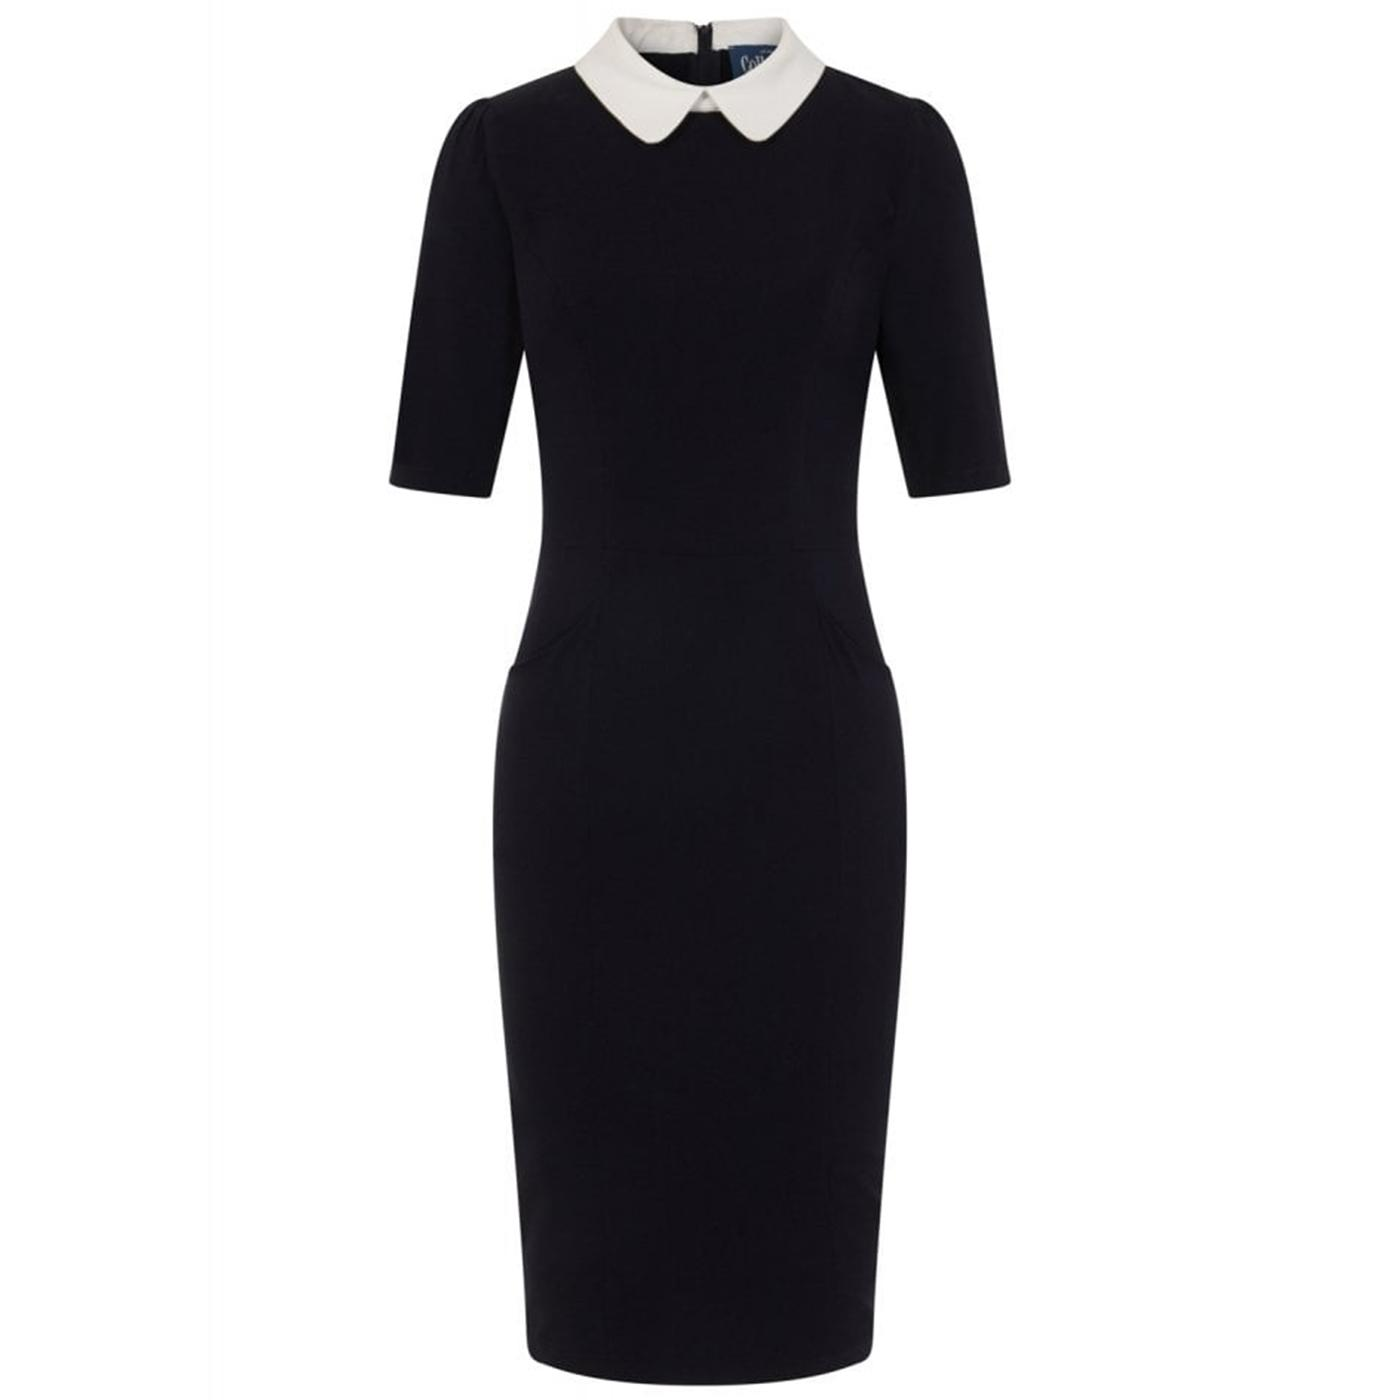 Winona COLLECTIF Vintage 60s Pencil Dress Navy/Wht